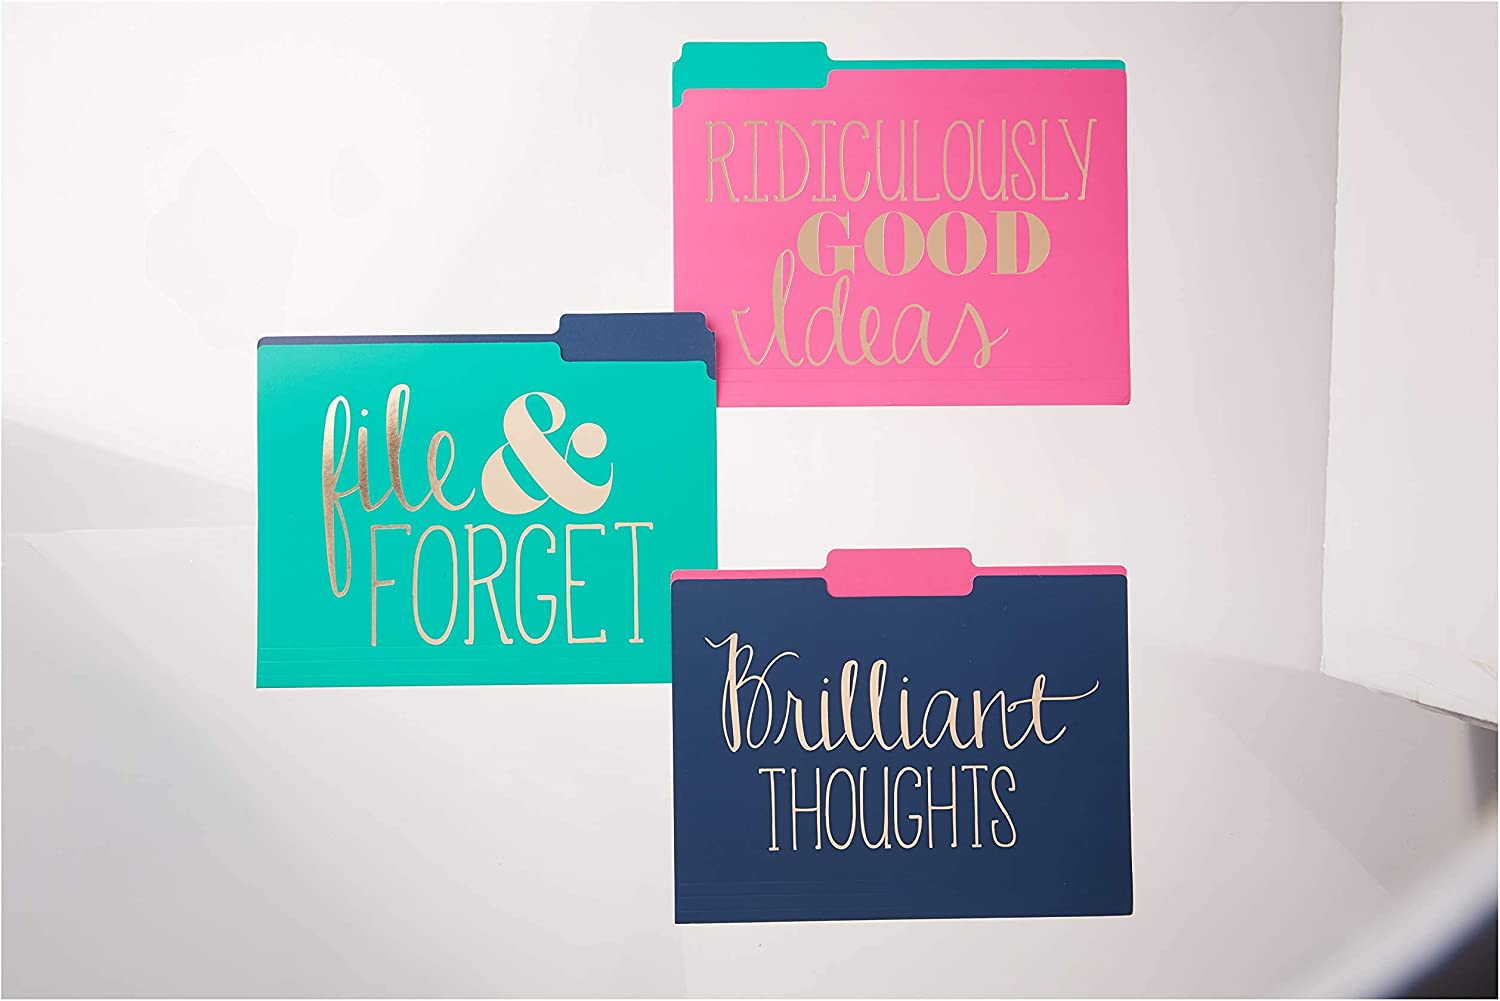 Gold Brilliant sold OFFicial out Thoughts Ridiculously File Ideas Forget Good